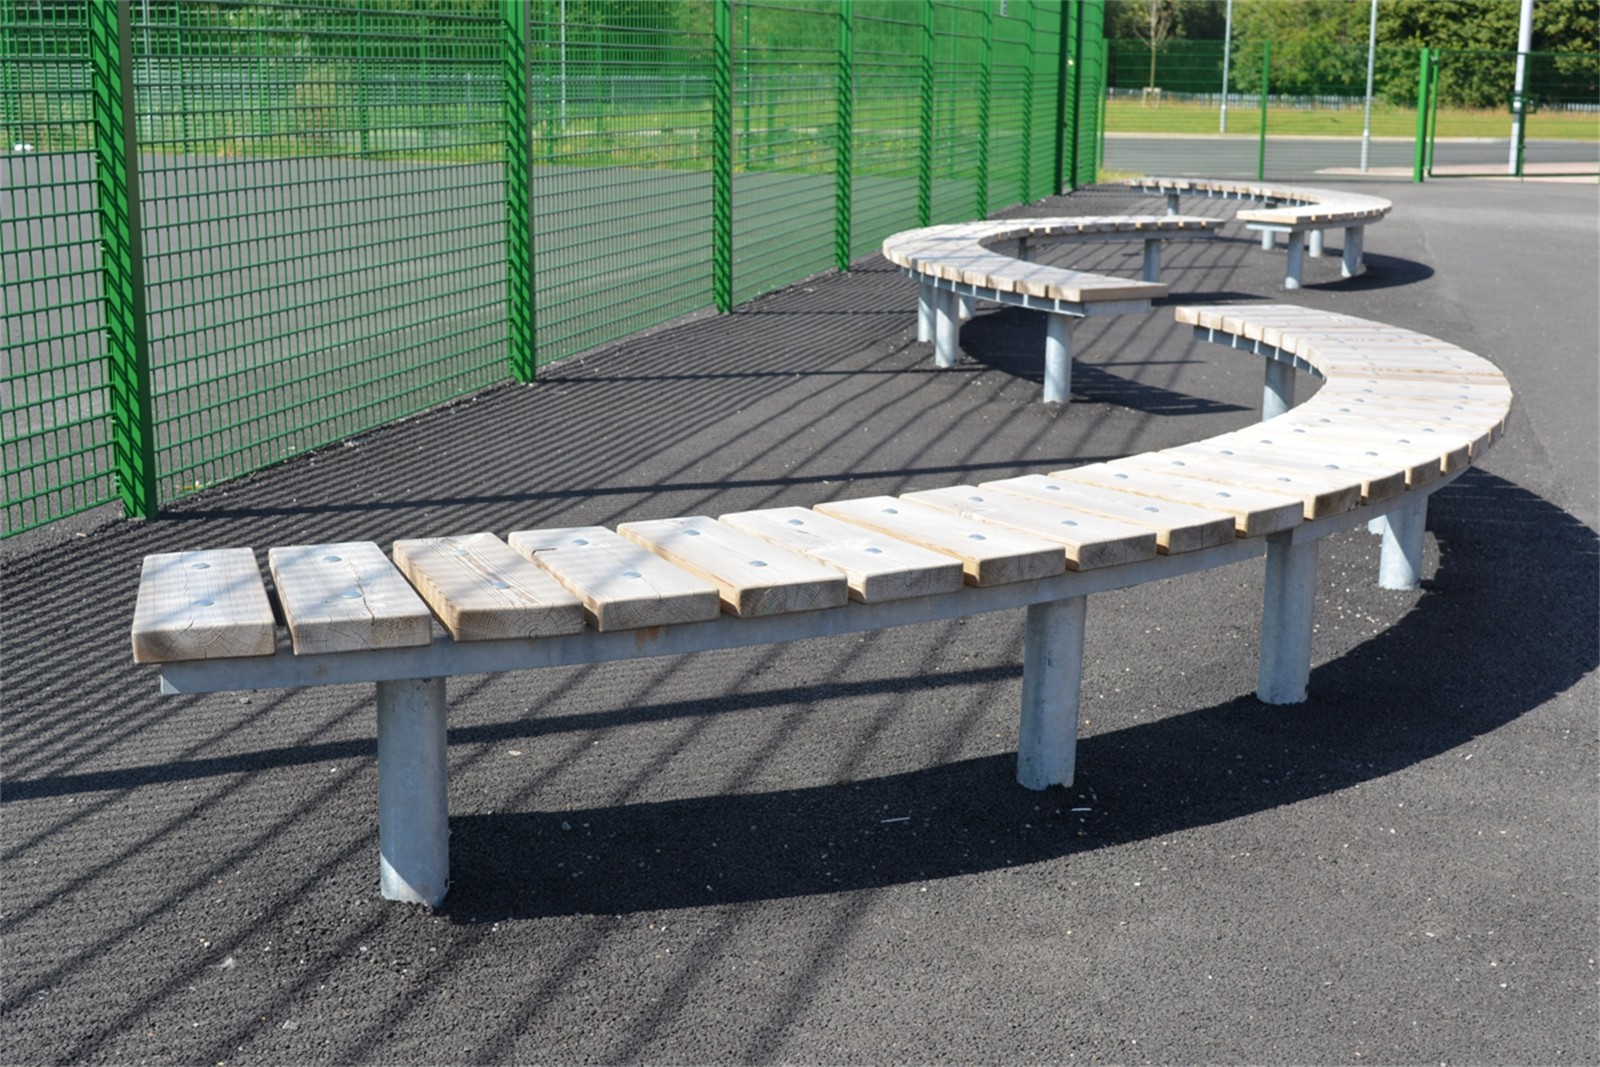 75ssp16 - Spalding long curved benches